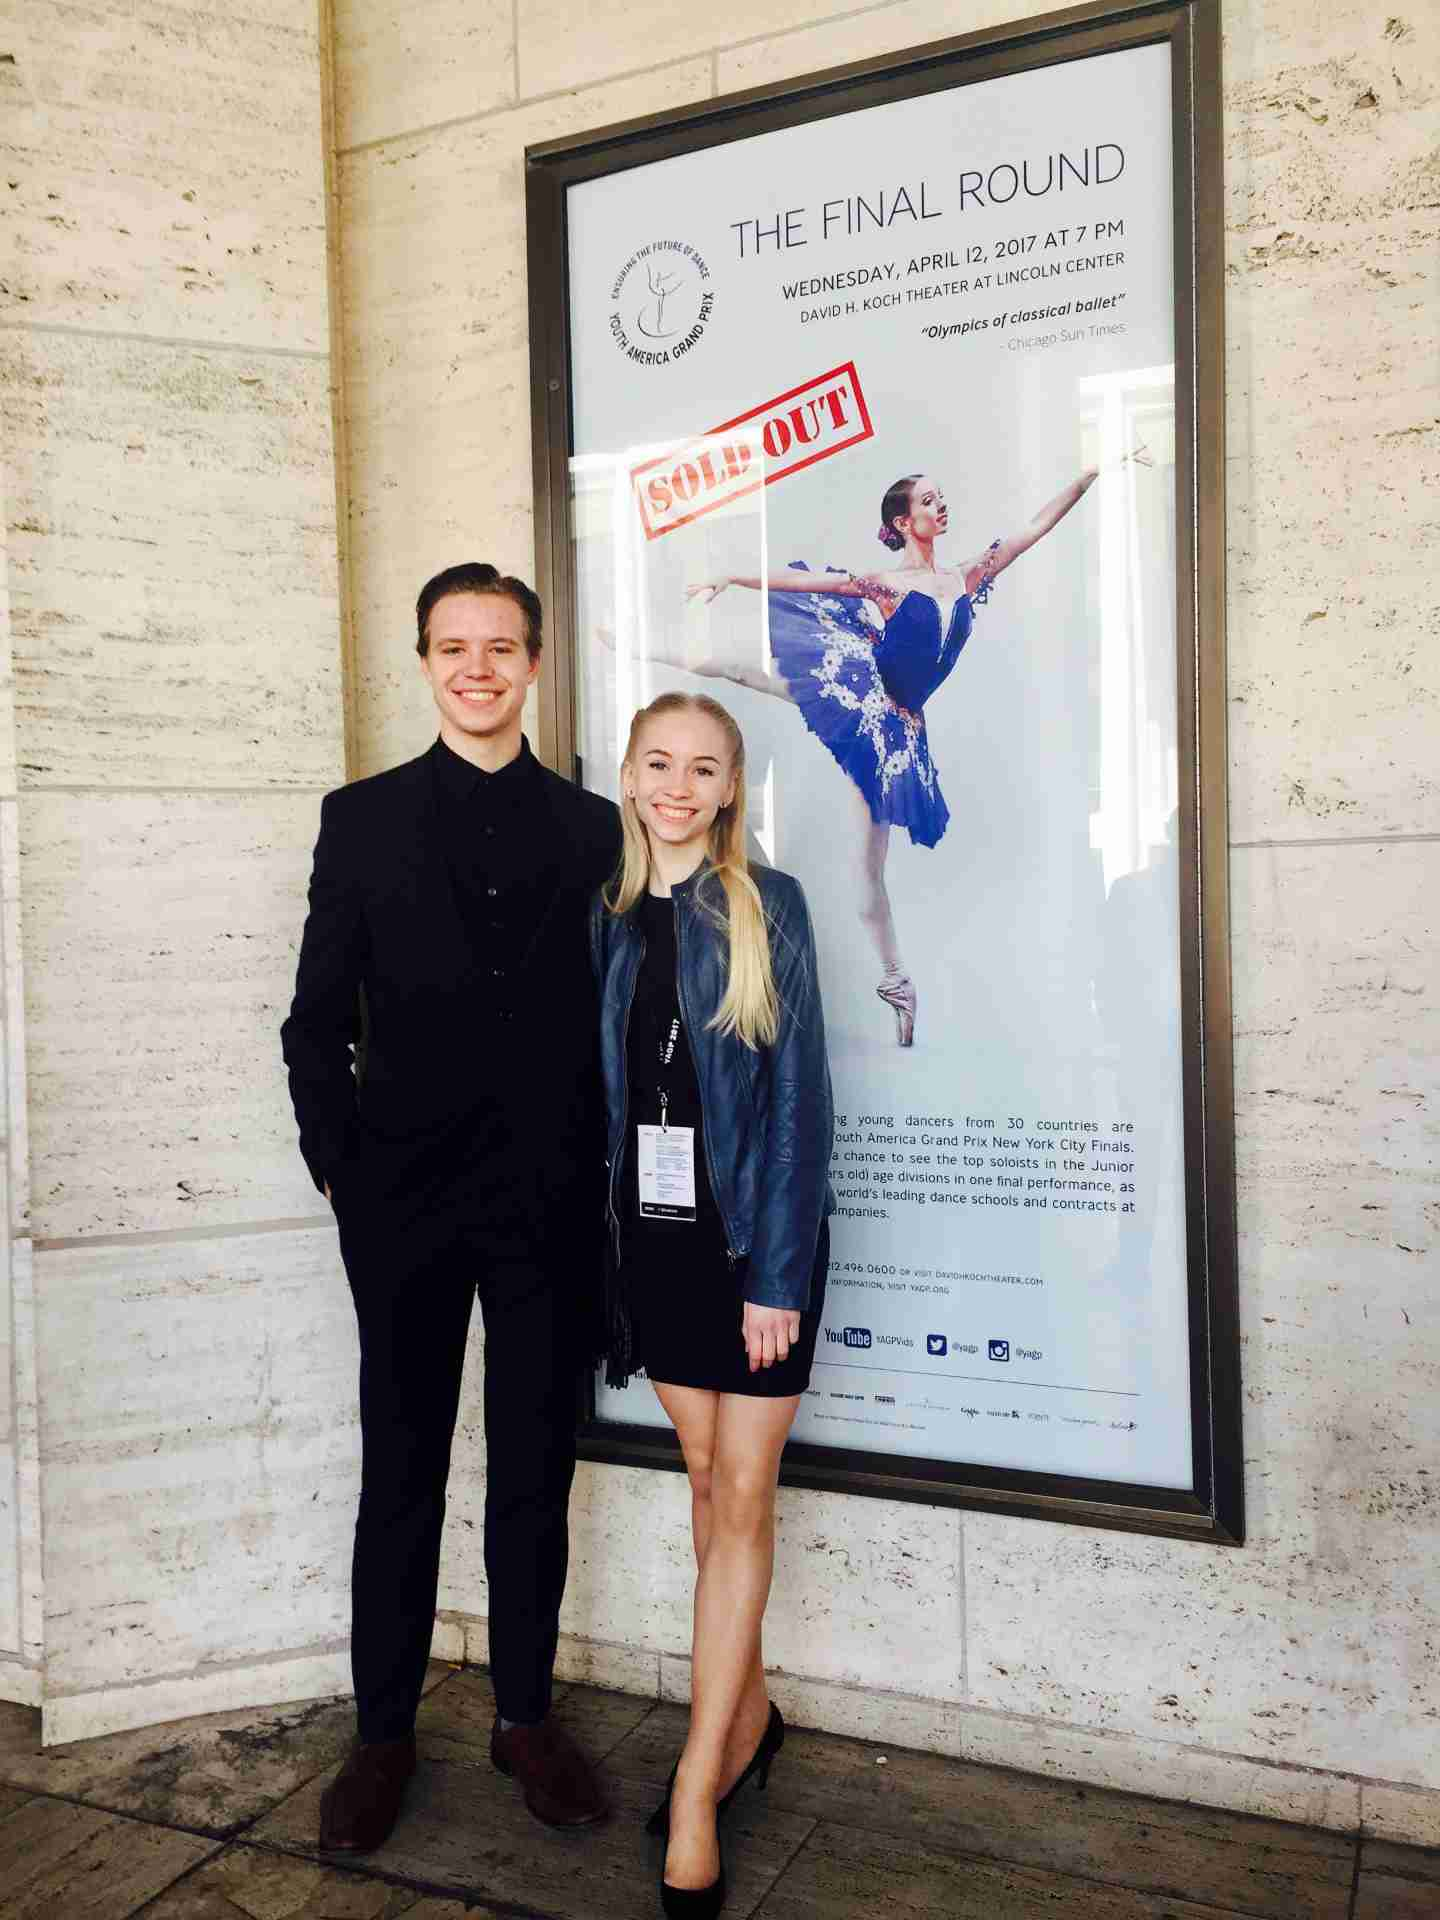 Student Awards Archive — KOLTUN BALLET BOSTON, KOLTUN BALLET BOSTON